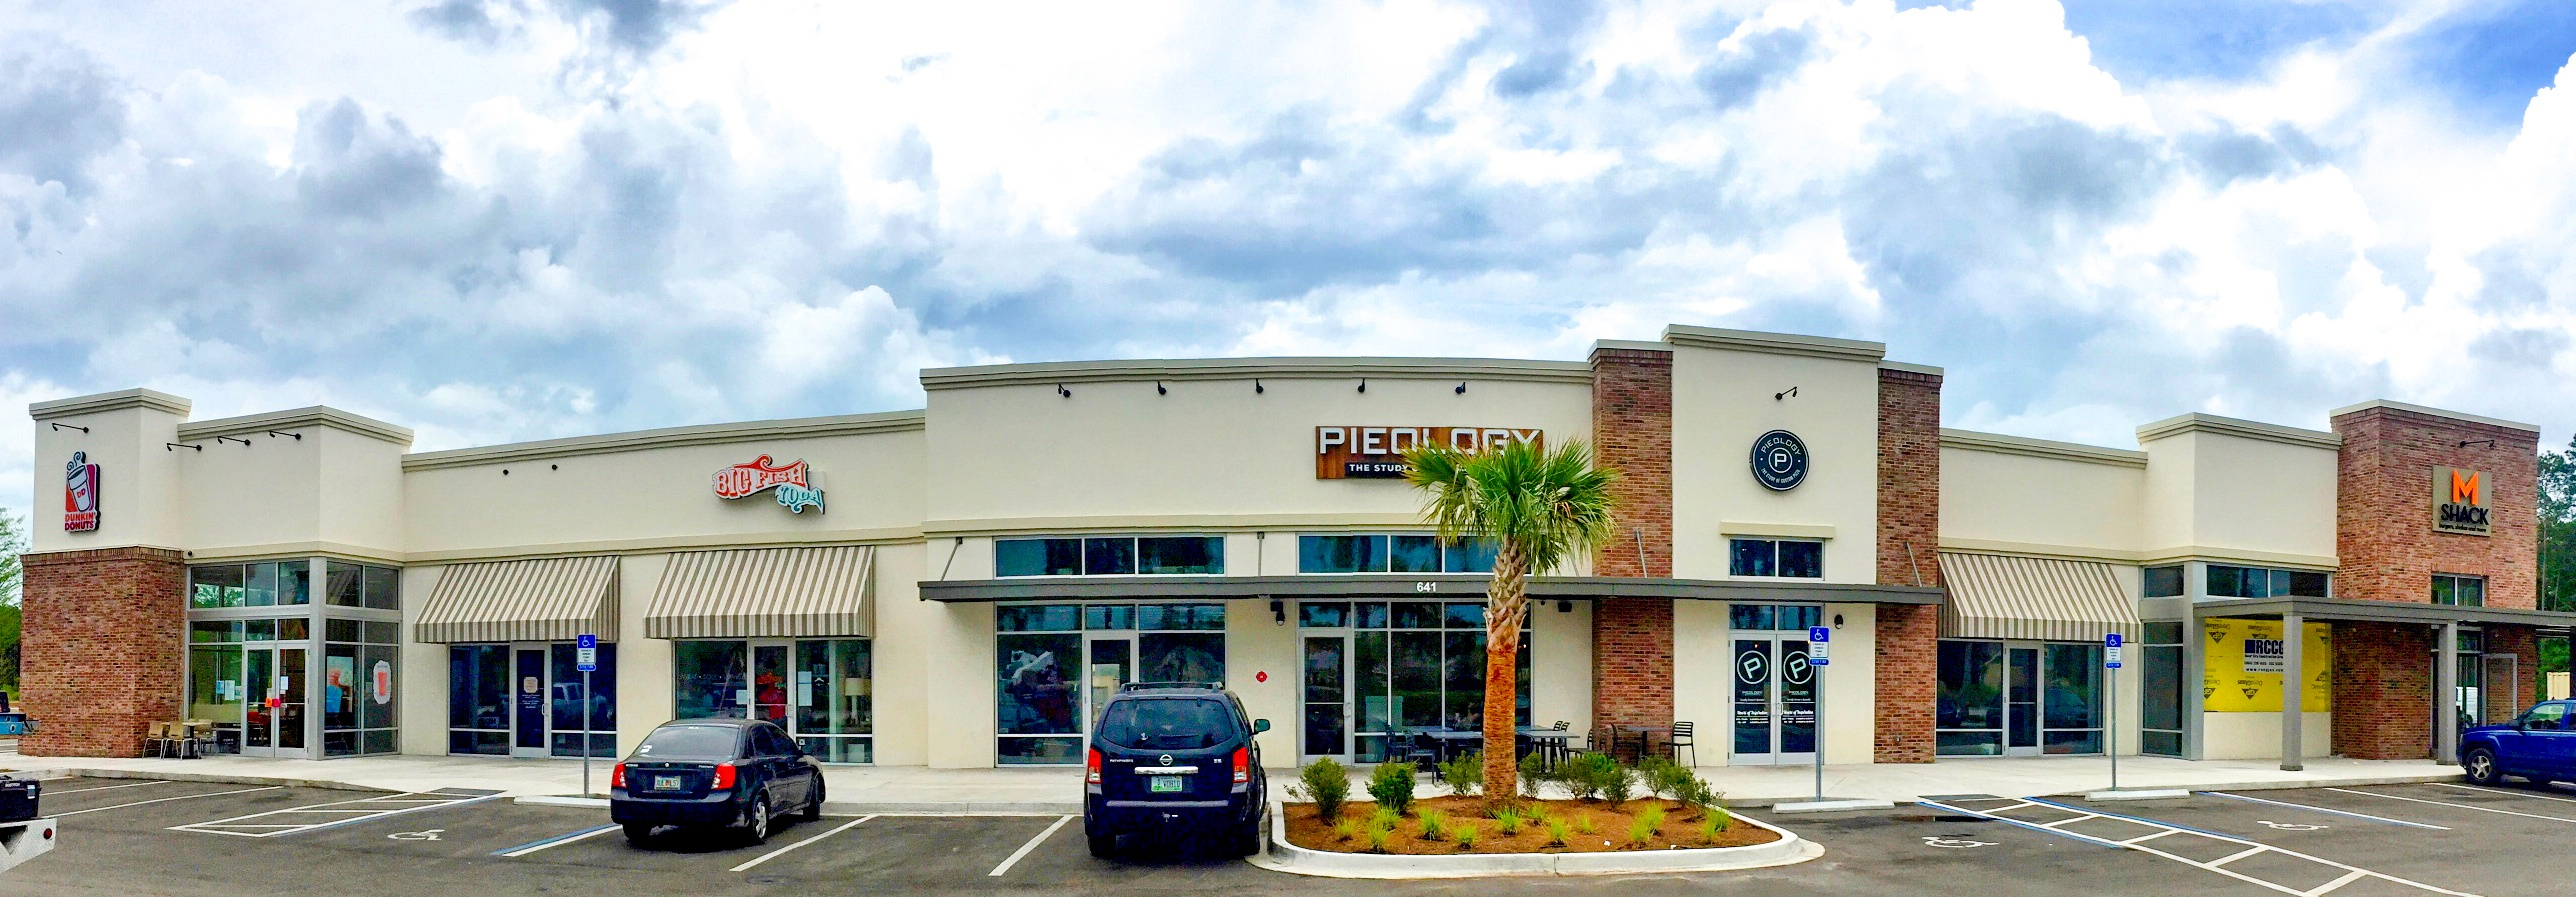 Noire Nail Bar and Crosswater Dental Coming Soon to Nocatee